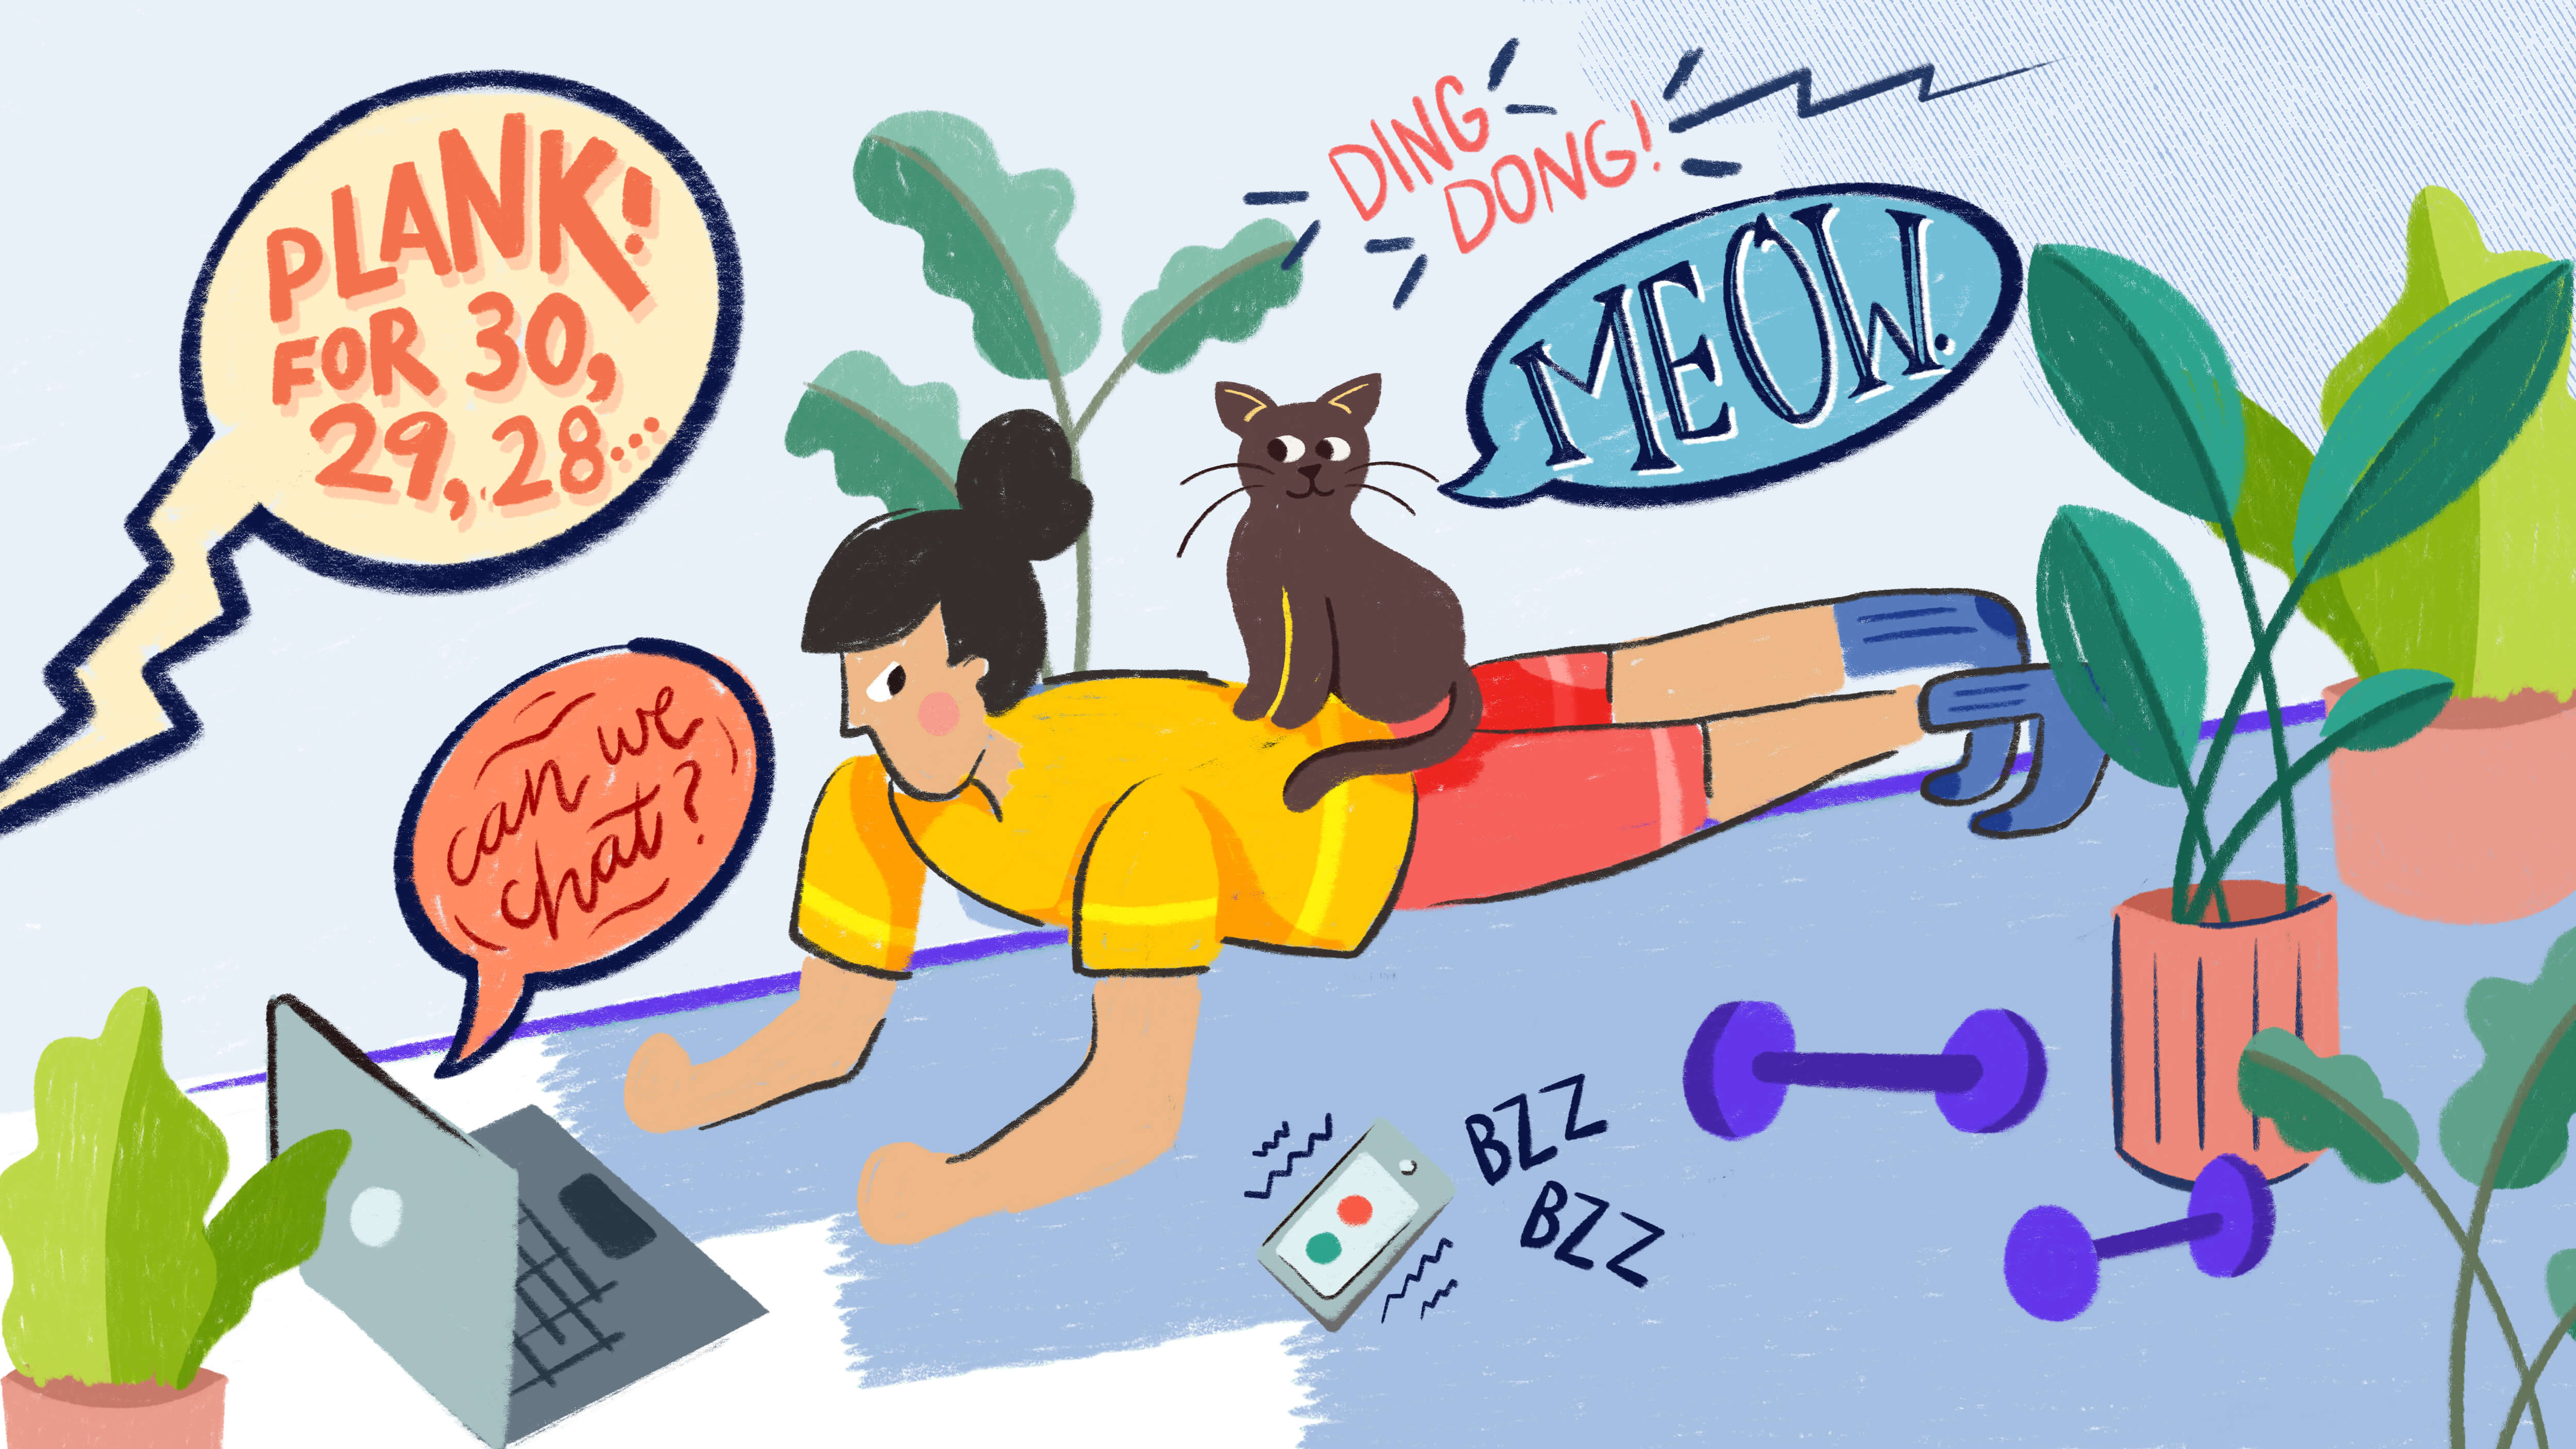 An illustration of a woman trying to do planks in her apartment with a cat on her back and a ringing phone and chat requests coming up on her laptop.